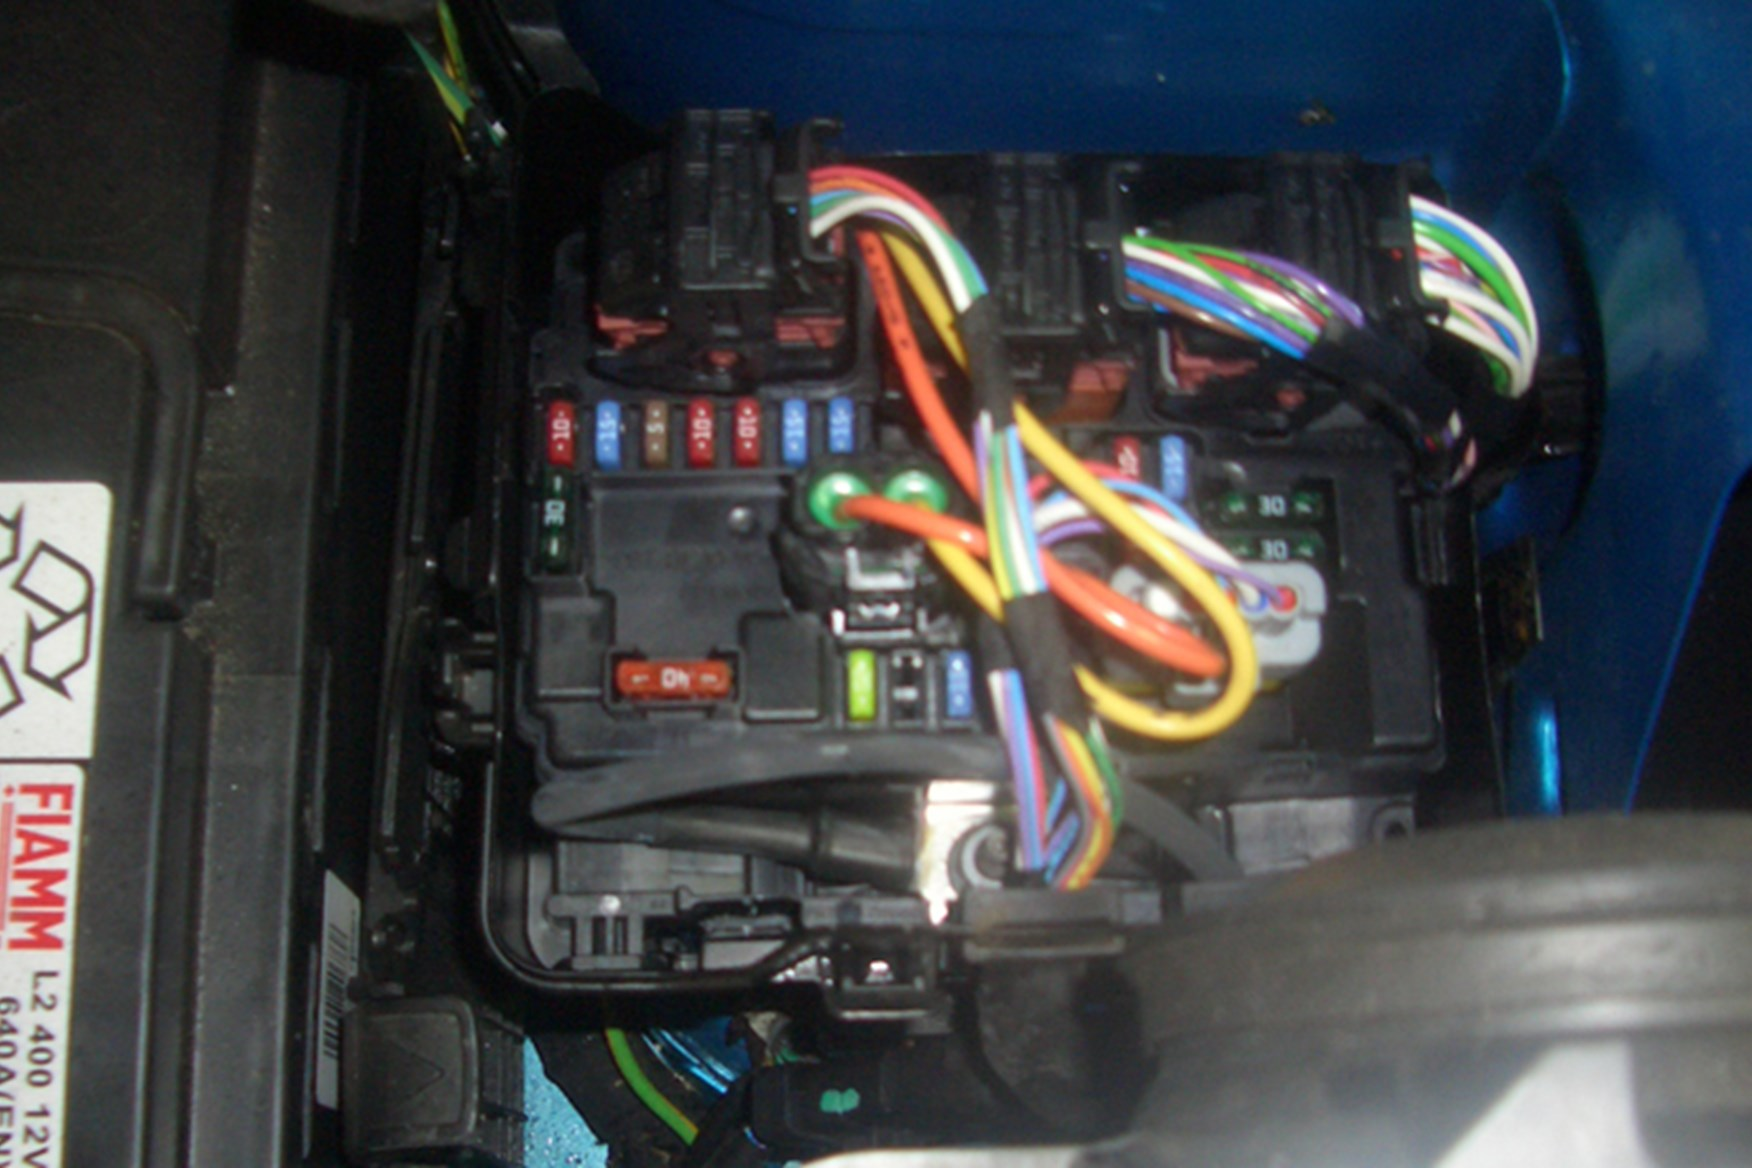 Car Fuse Box Problems Wiring Schematics Diagram Electric Not Working Citroen C3 Online Location